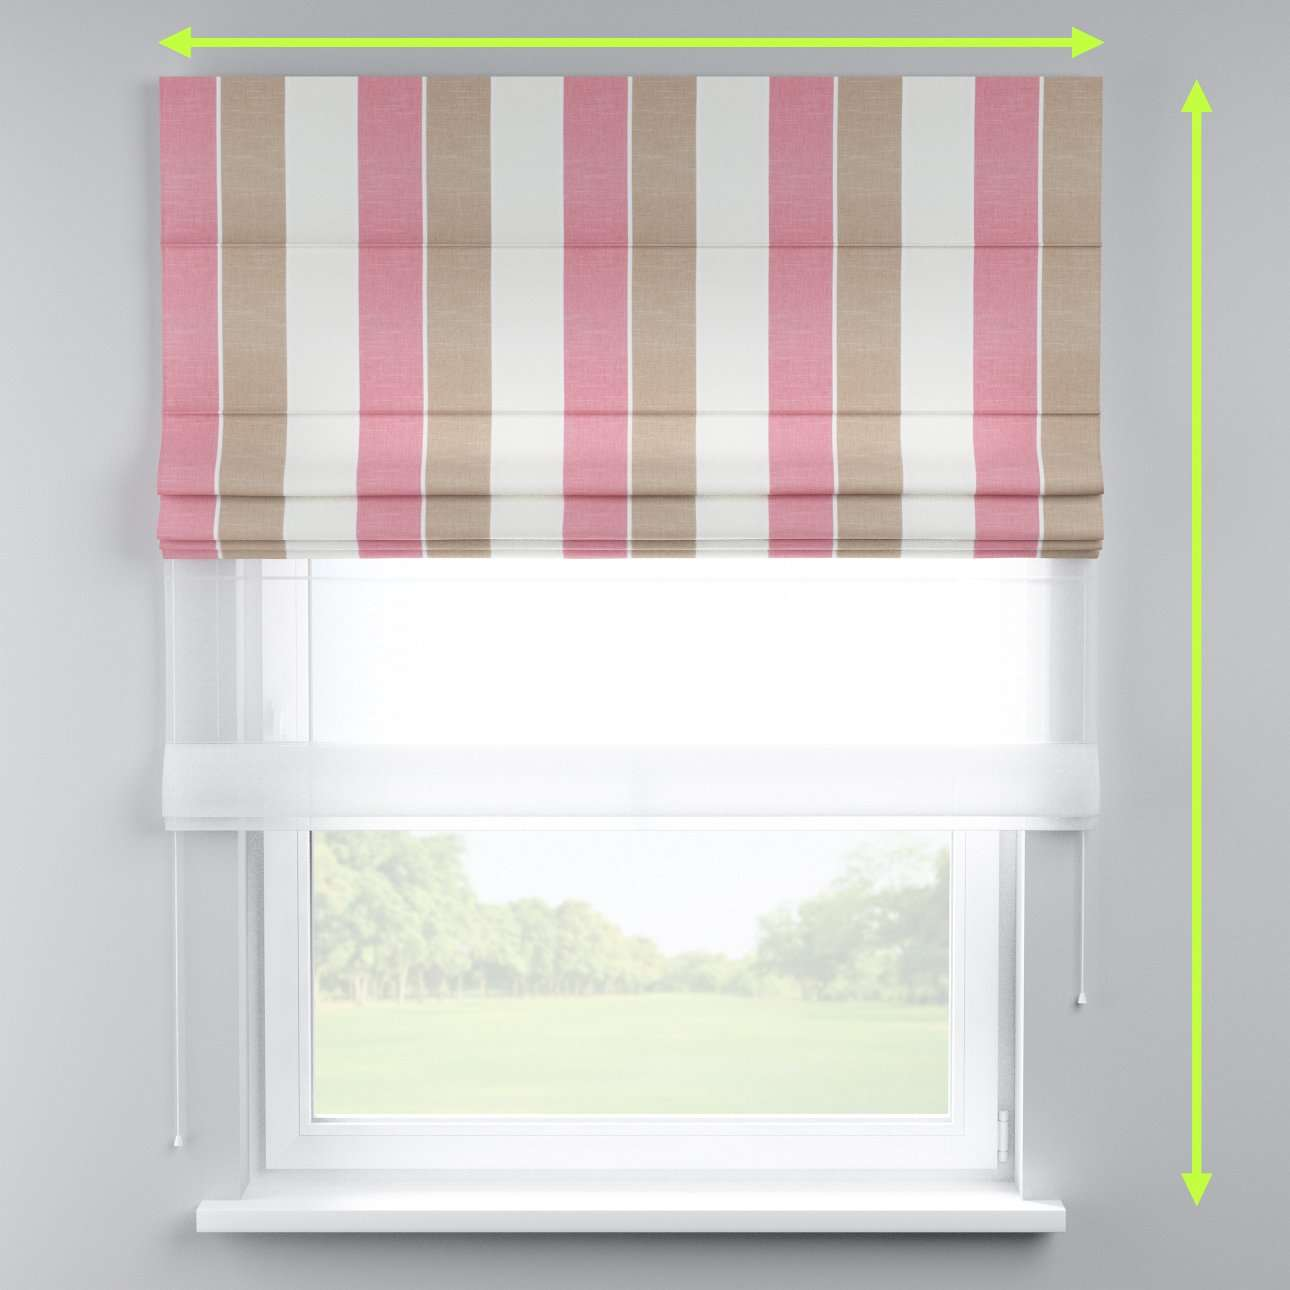 Voile and fabric roman blind (DUO II) in collection Cardiff, fabric: 136-32